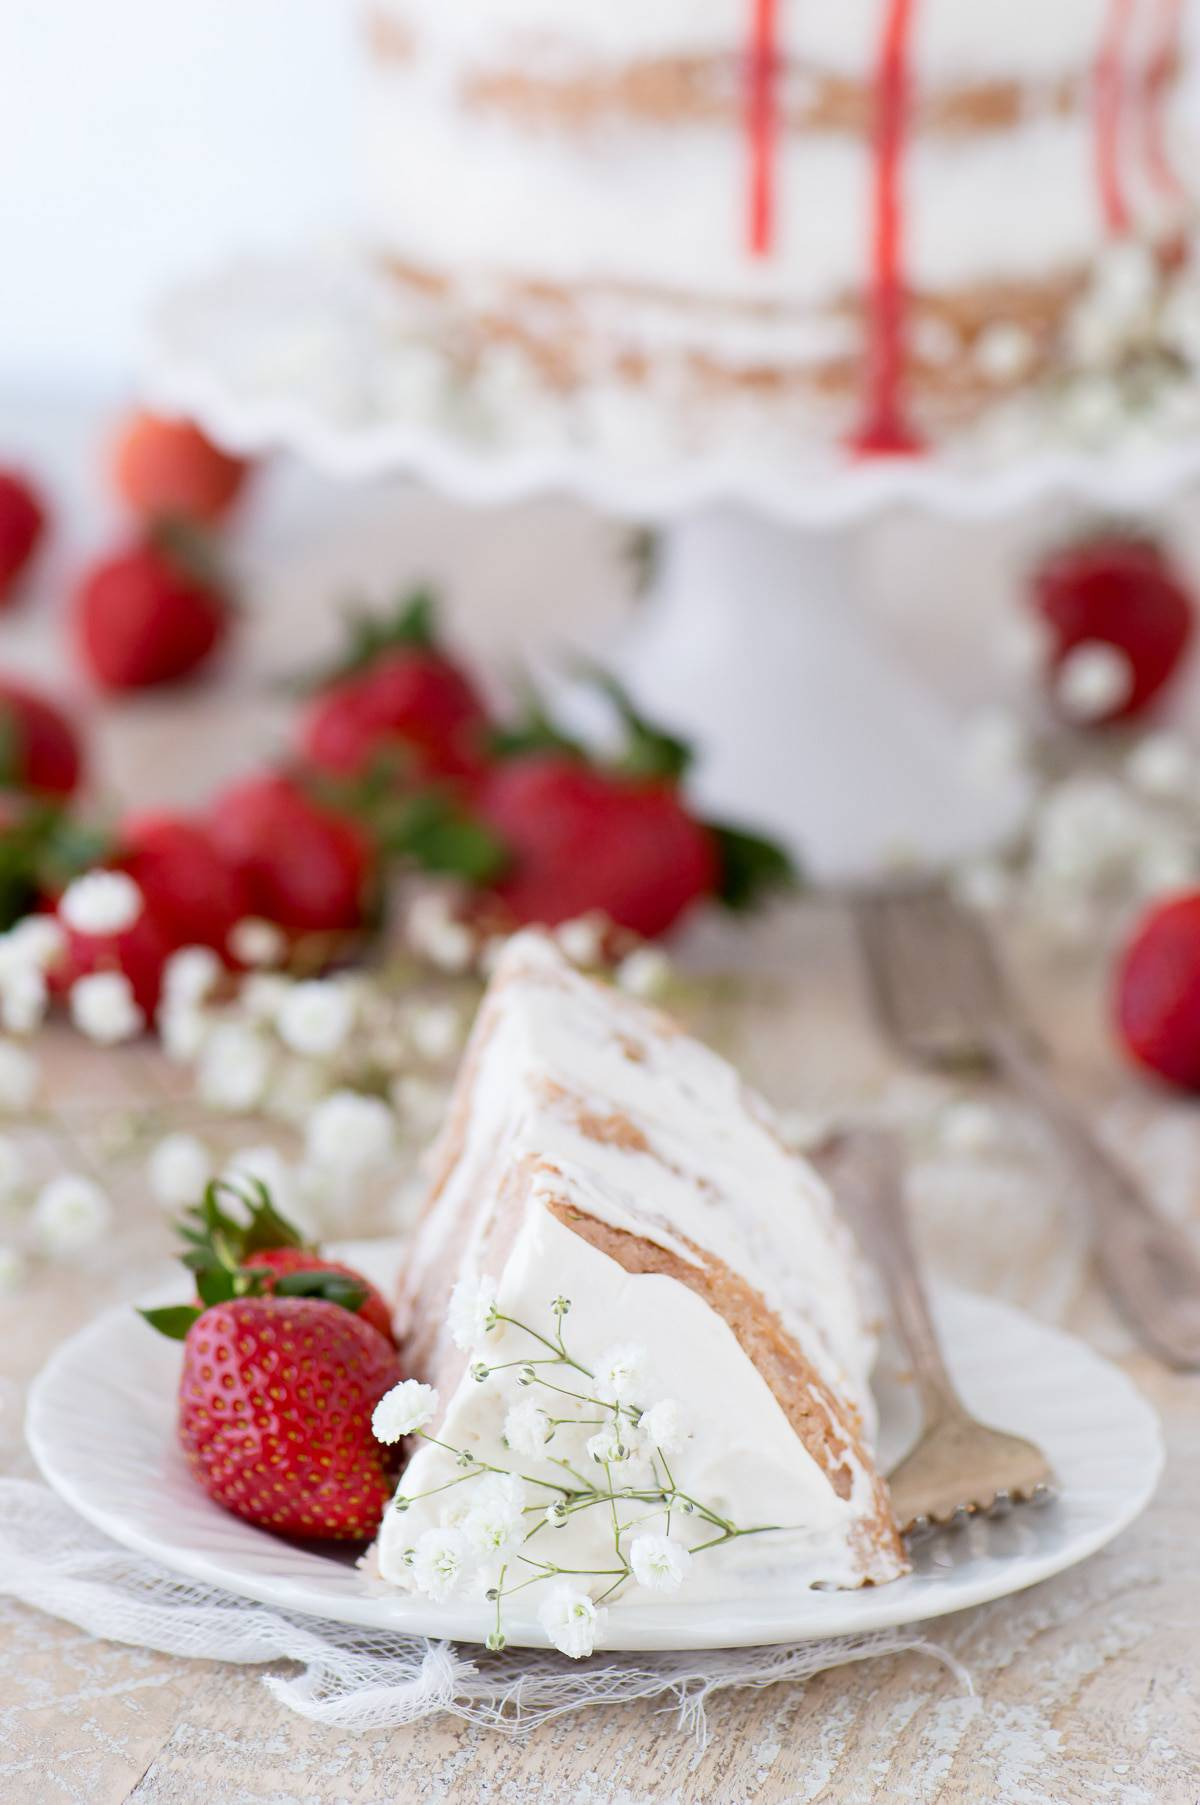 This strawberry naked cake is made with fresh pureed strawberries and is paired with homemade sweet cream whipped cream! Like a strawberries and cream cake!